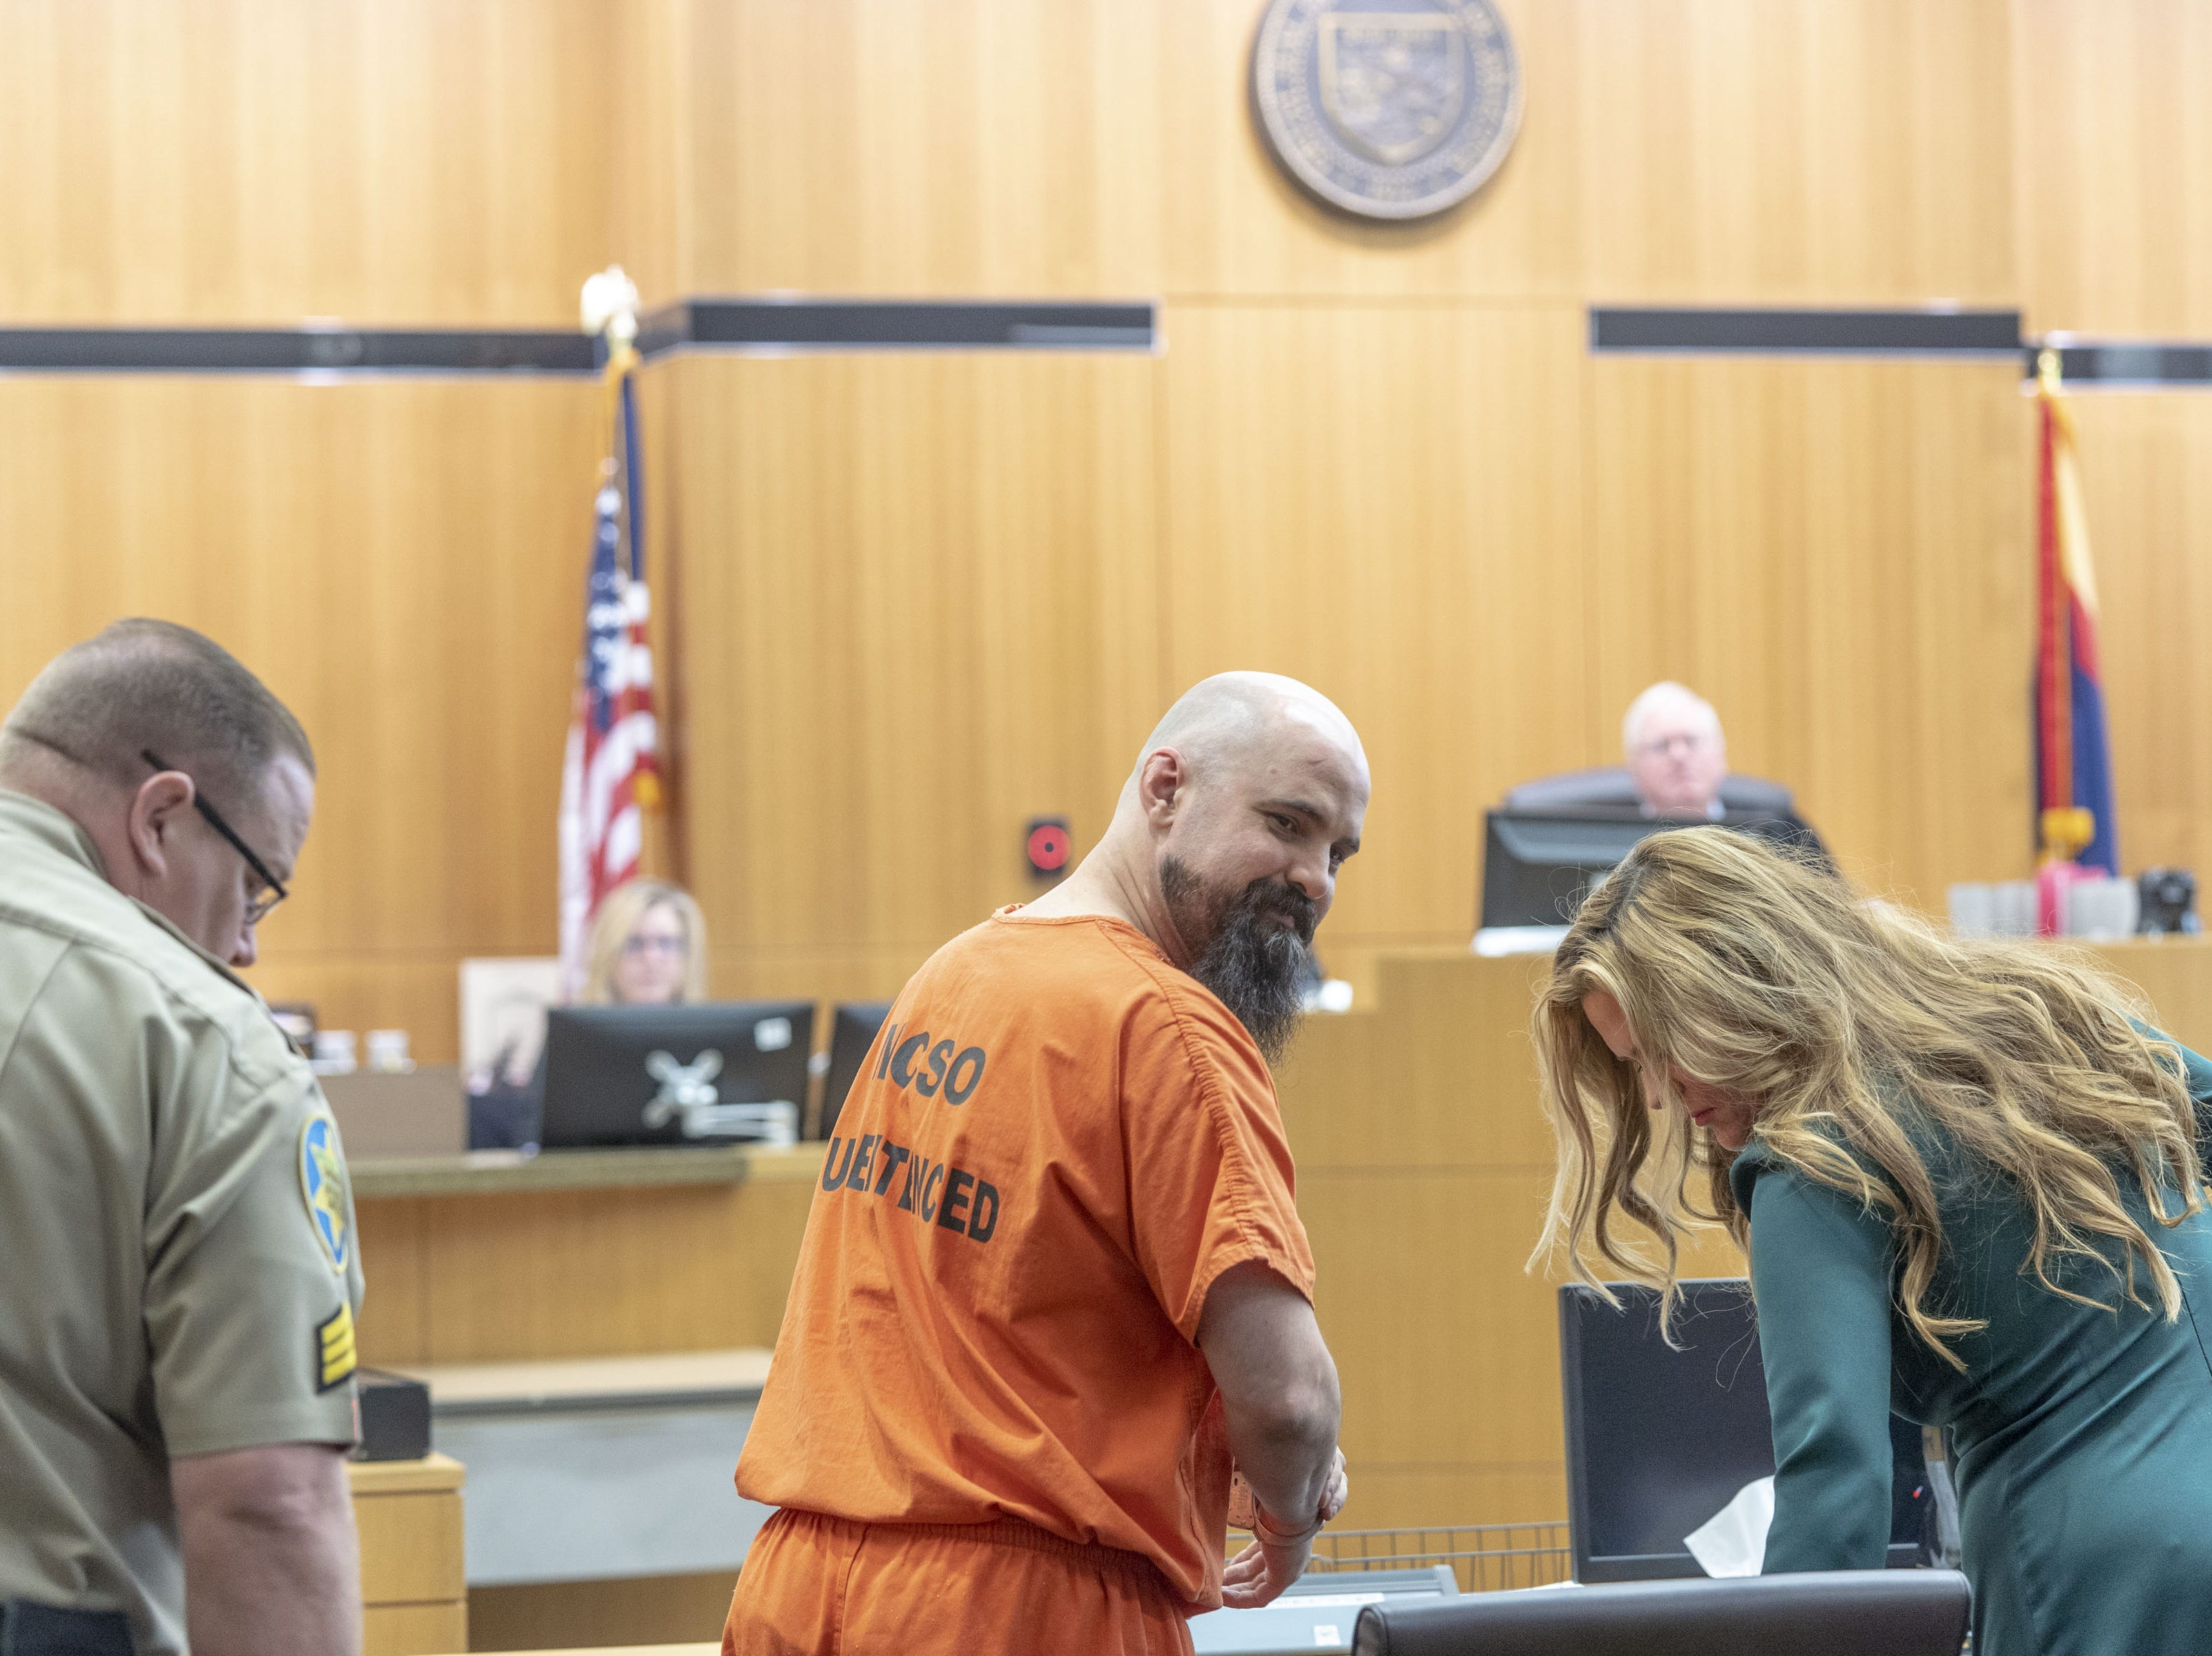 Judge Warren Granville sentenced Michael Crane to life without parole for the first-degree murder of Bruce Gaudet, Glenna and Lawrence Shapiro, kidnapping, burglary, arson, and other charges at Maricopa County Superior Court on March 22, 2019.